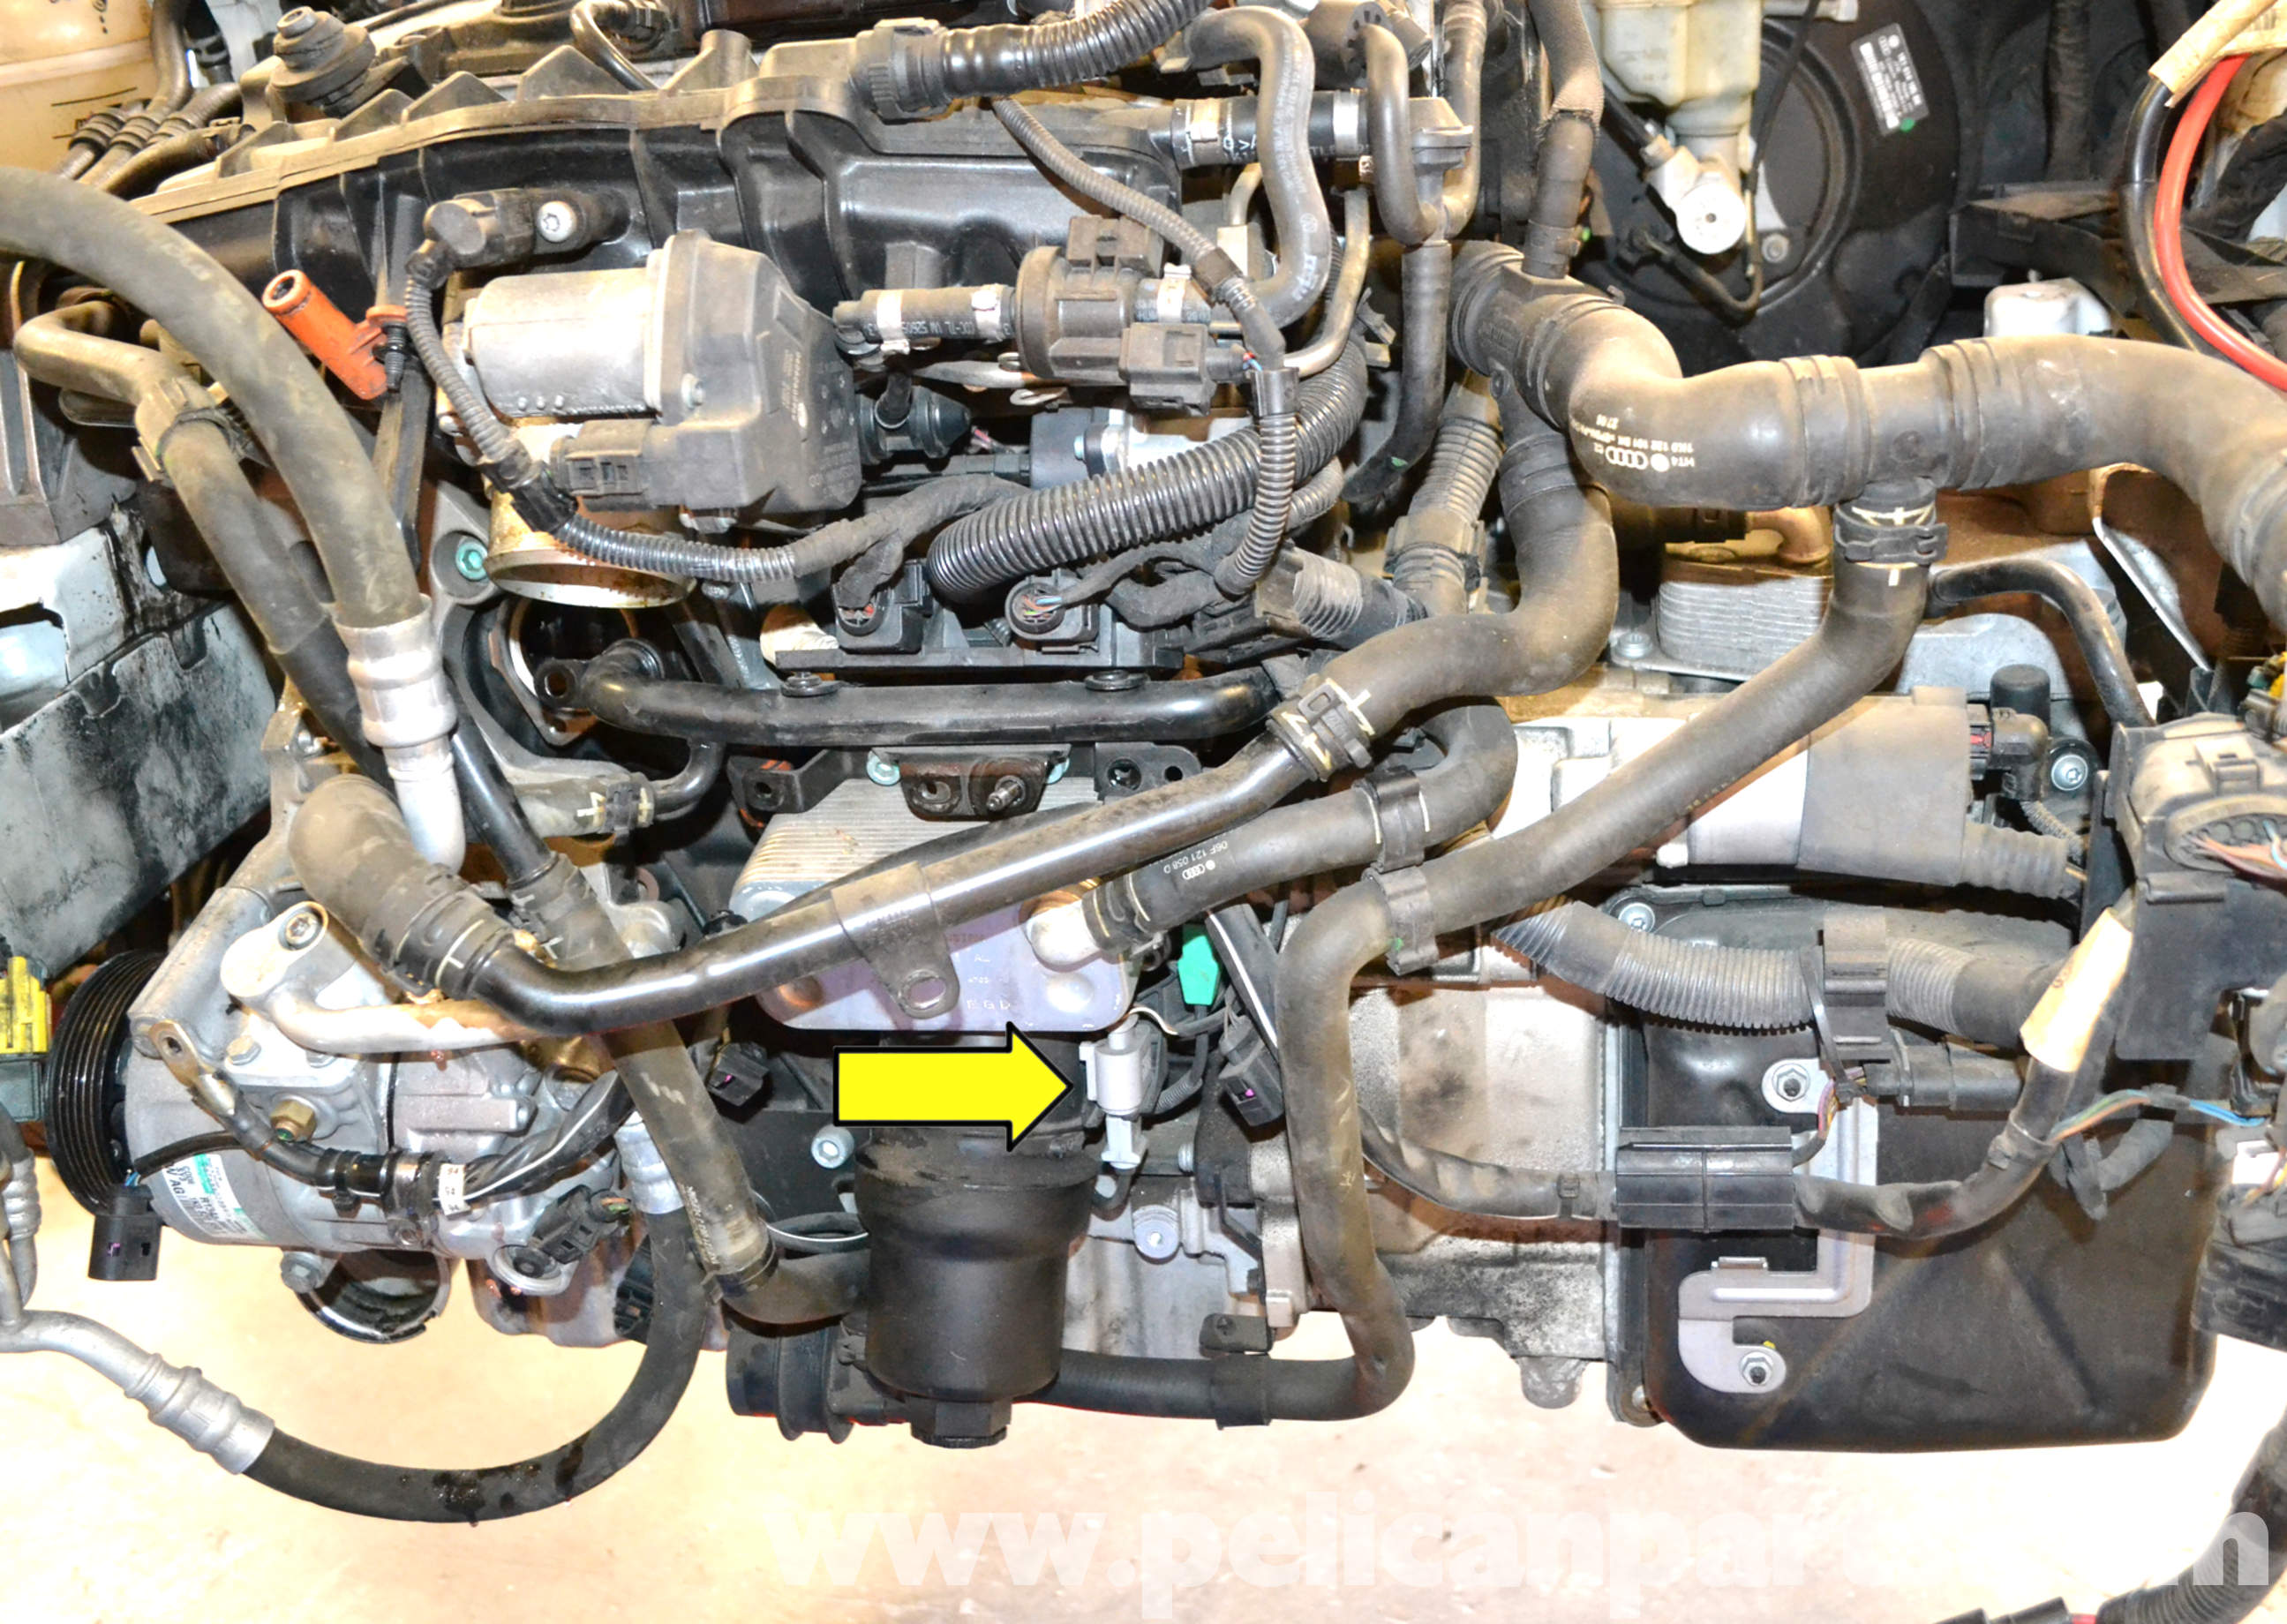 Vw Crafter Prop Shaft Problems Pic